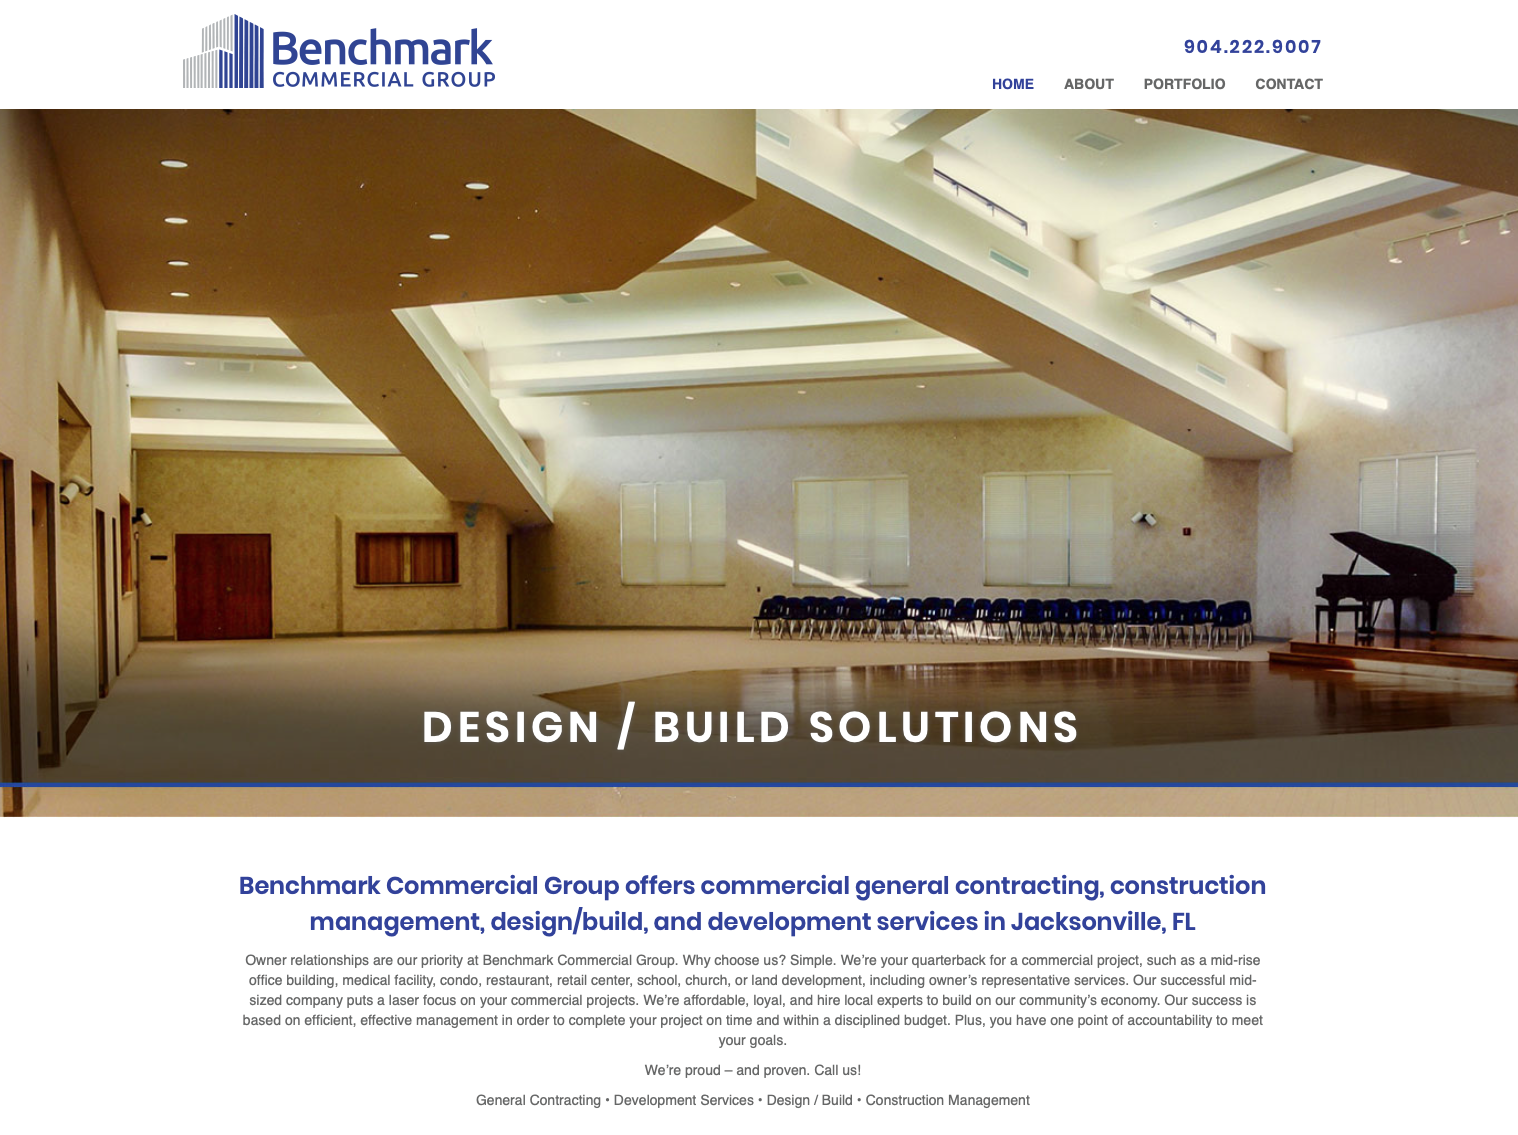 Benchmark Commercial Group website design